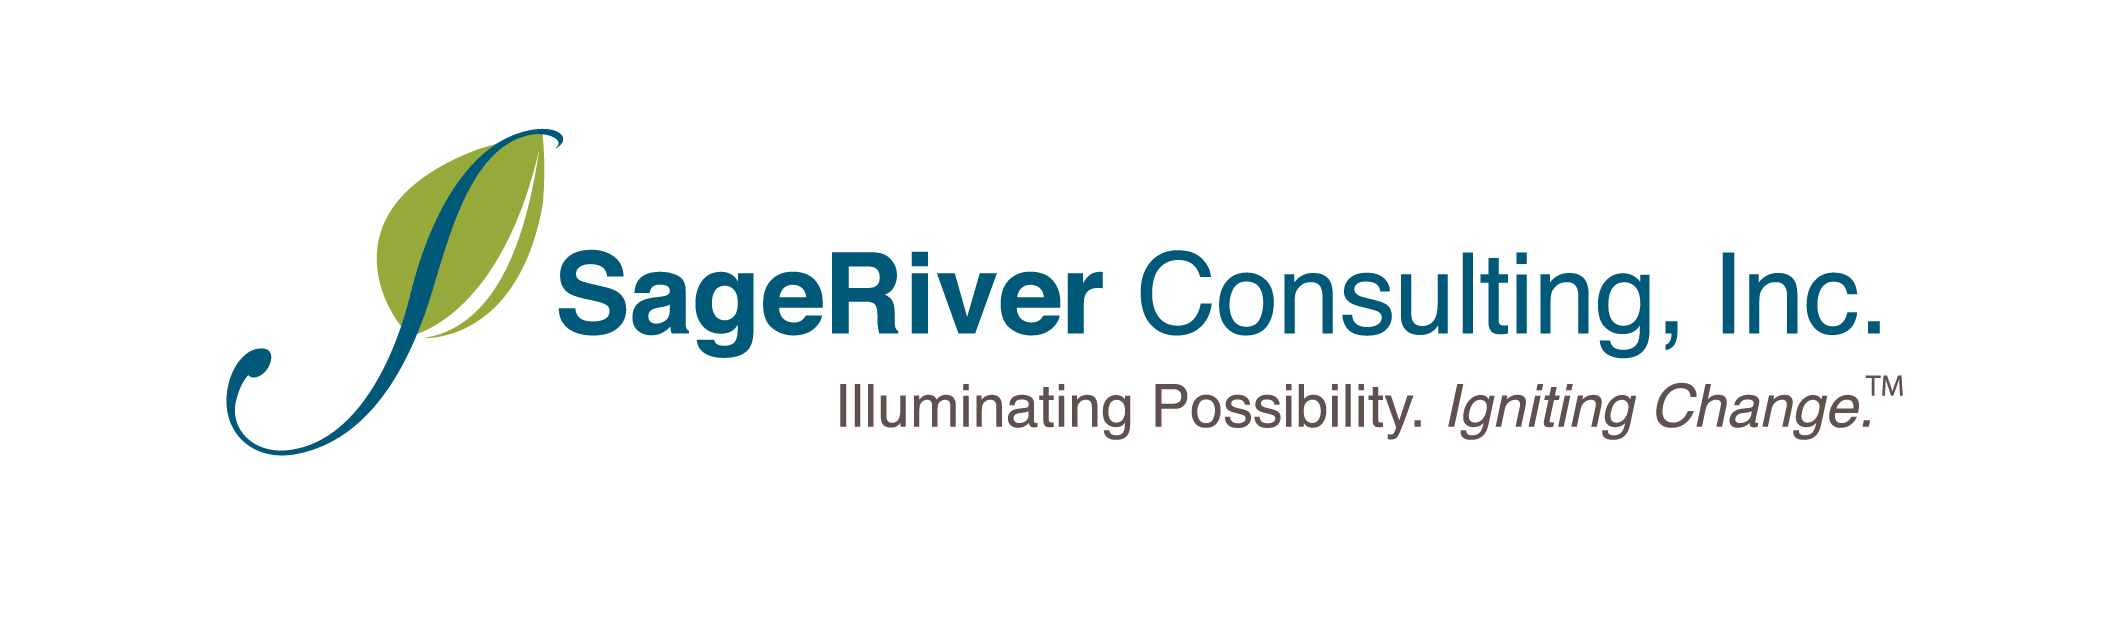 SageRiver Consulting Logo